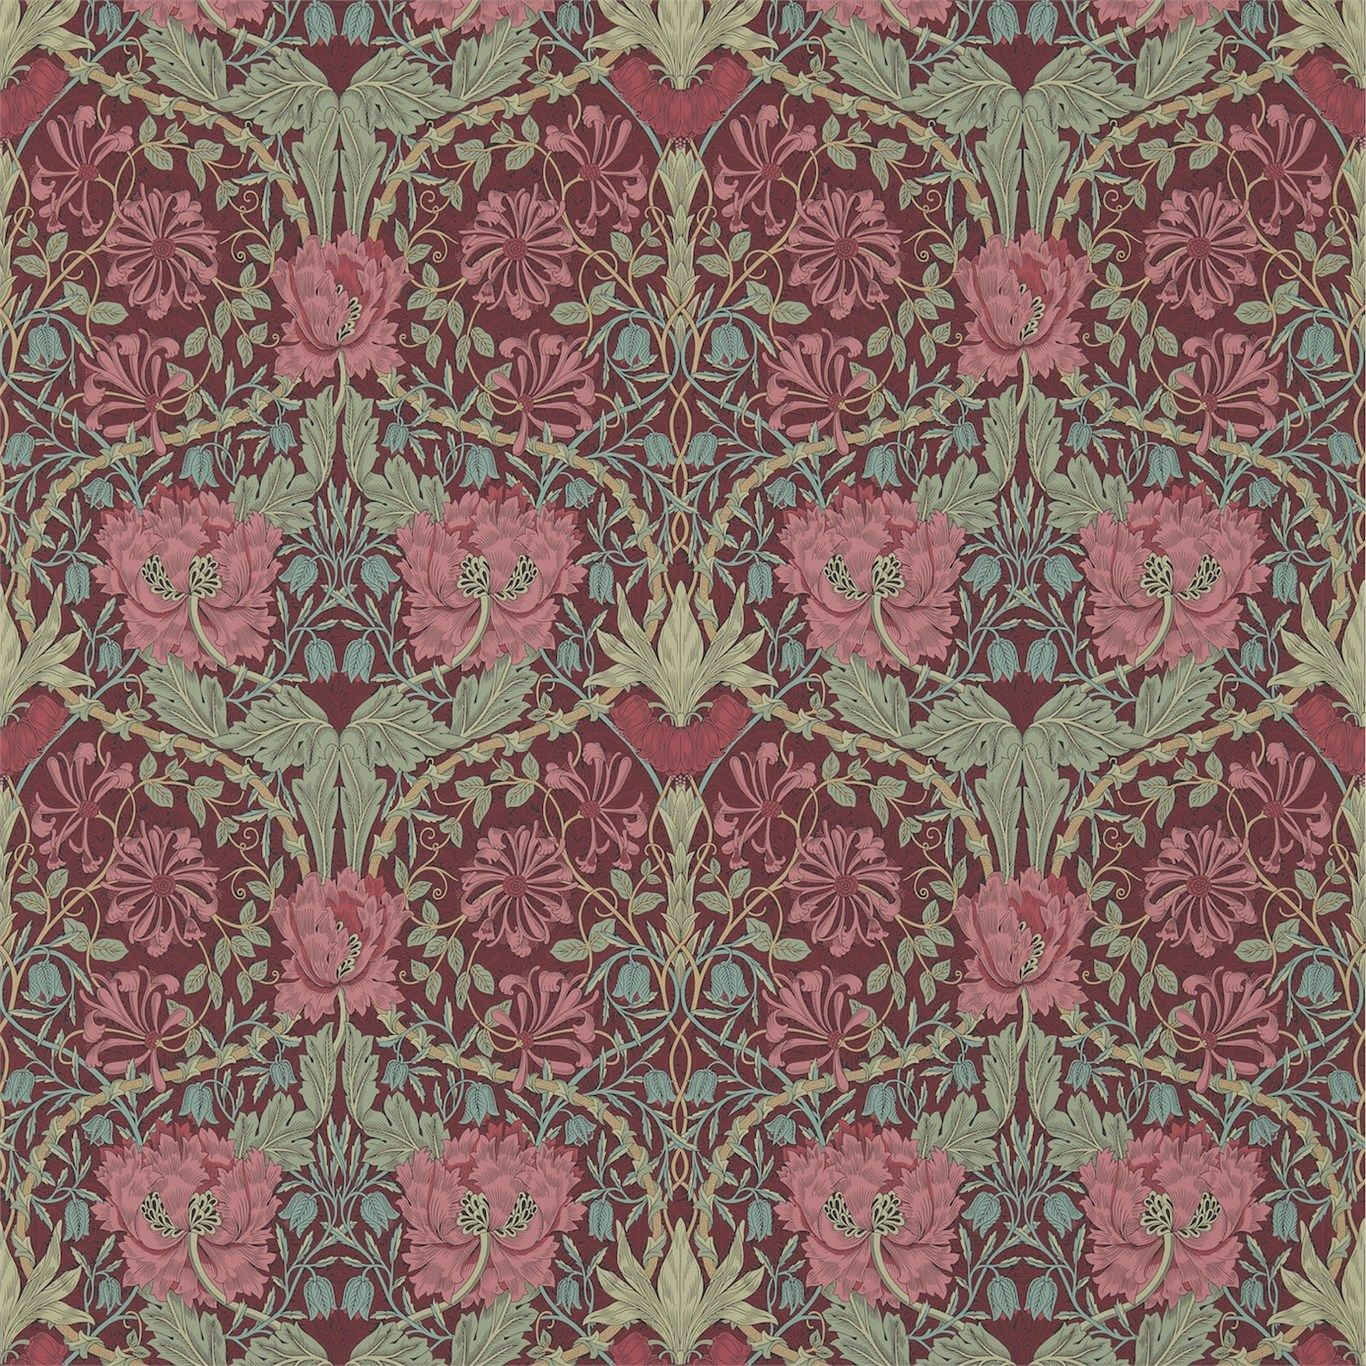 Morris & Co Honeysuckle & Tulip Wallpaper William